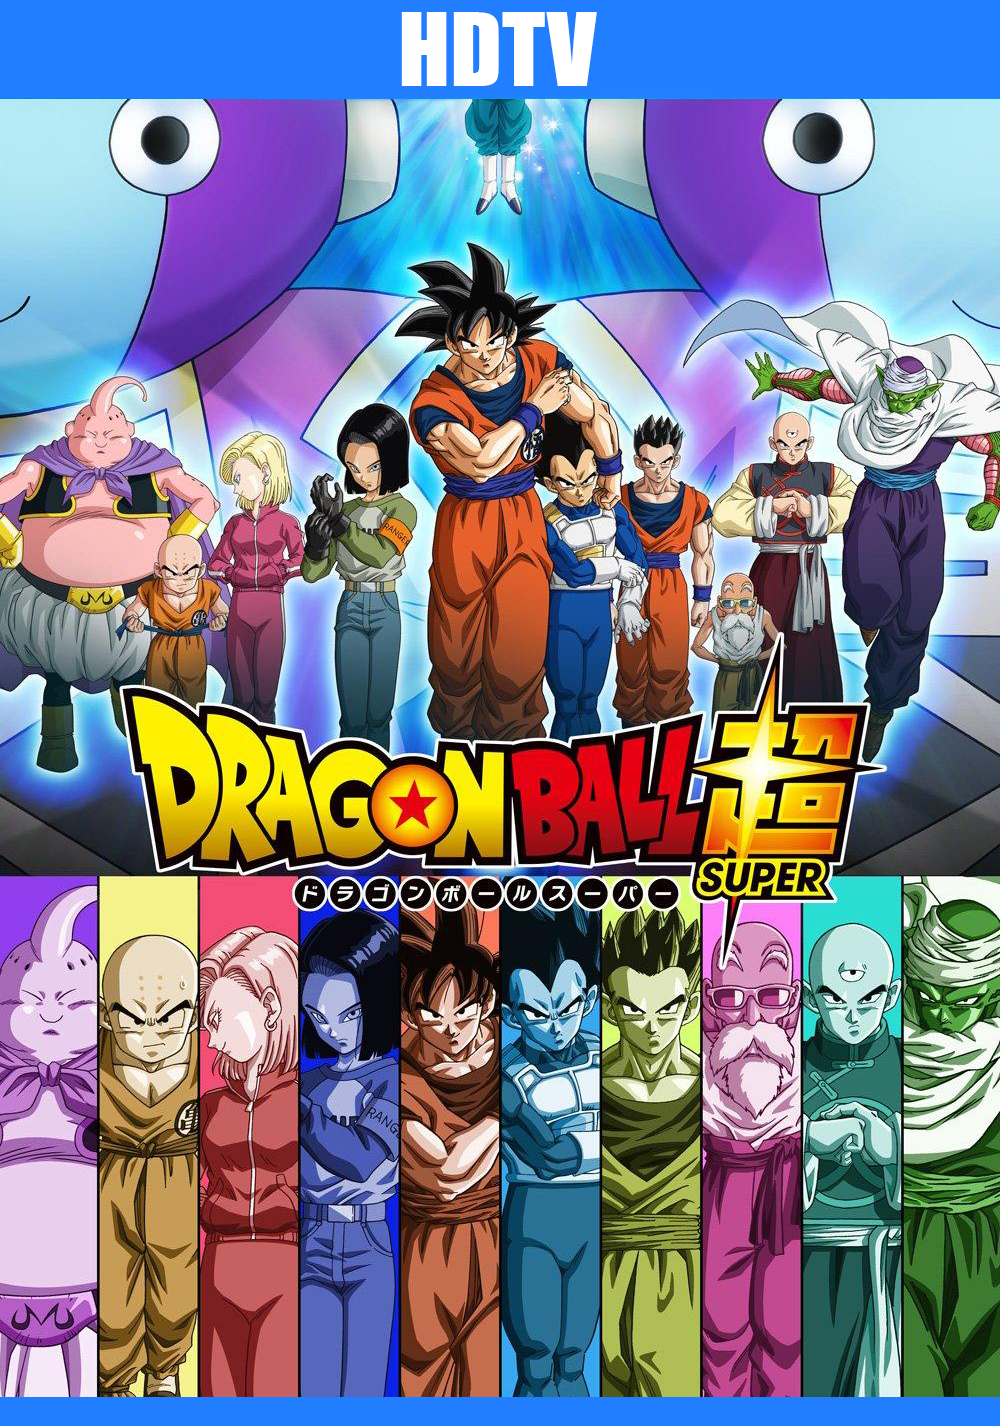 Download Dragon Ball Super (2015) - Completo Legendado MP4 720p MEGA